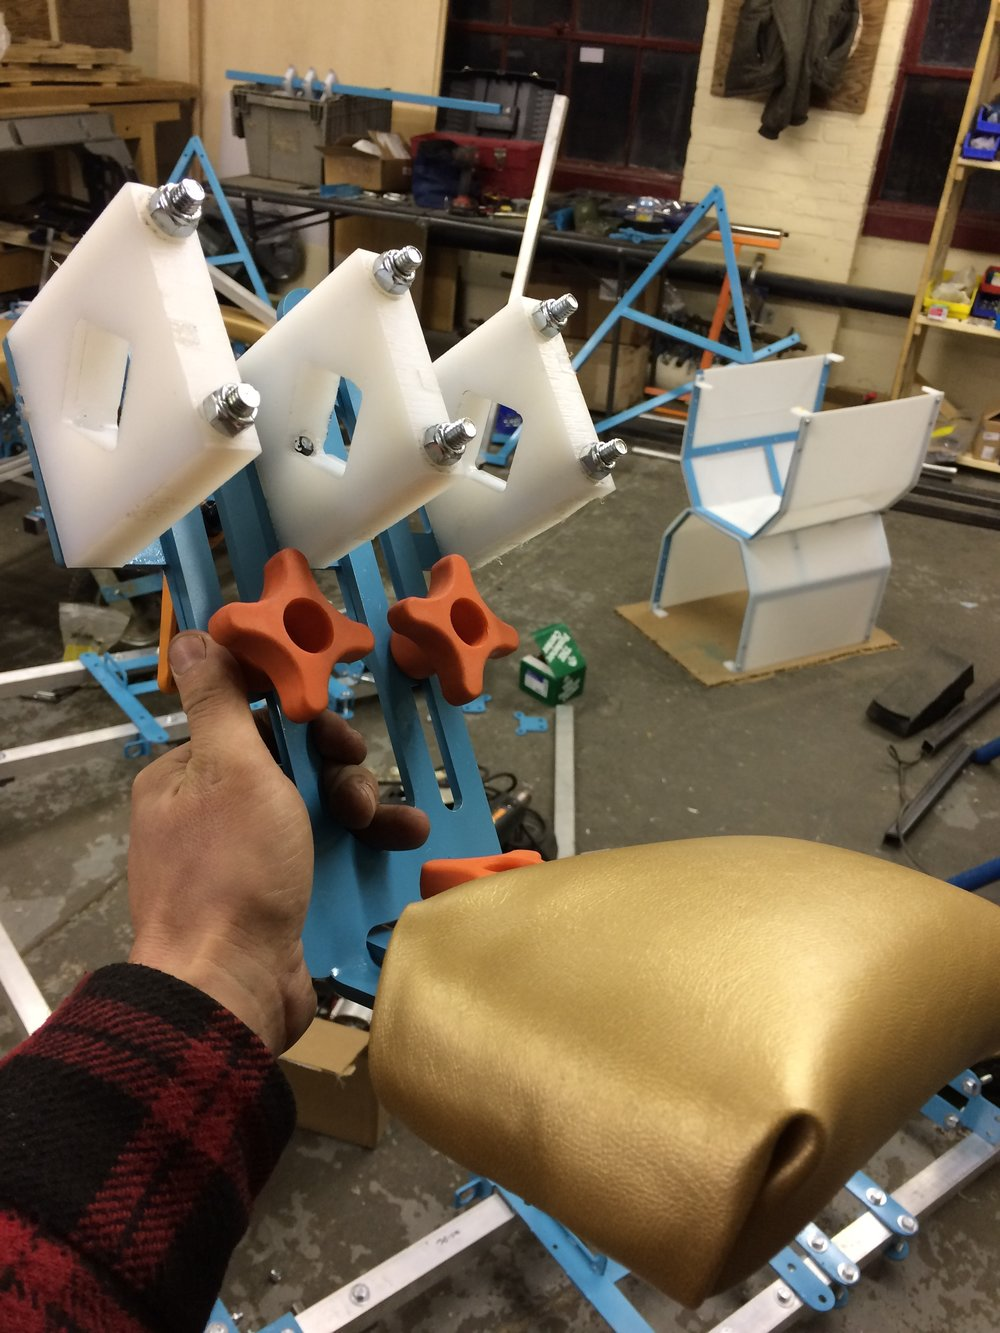 Headrest assembly in the shop. Orange knobs are for adjustments - there's lots of flexibility built in to the body pads